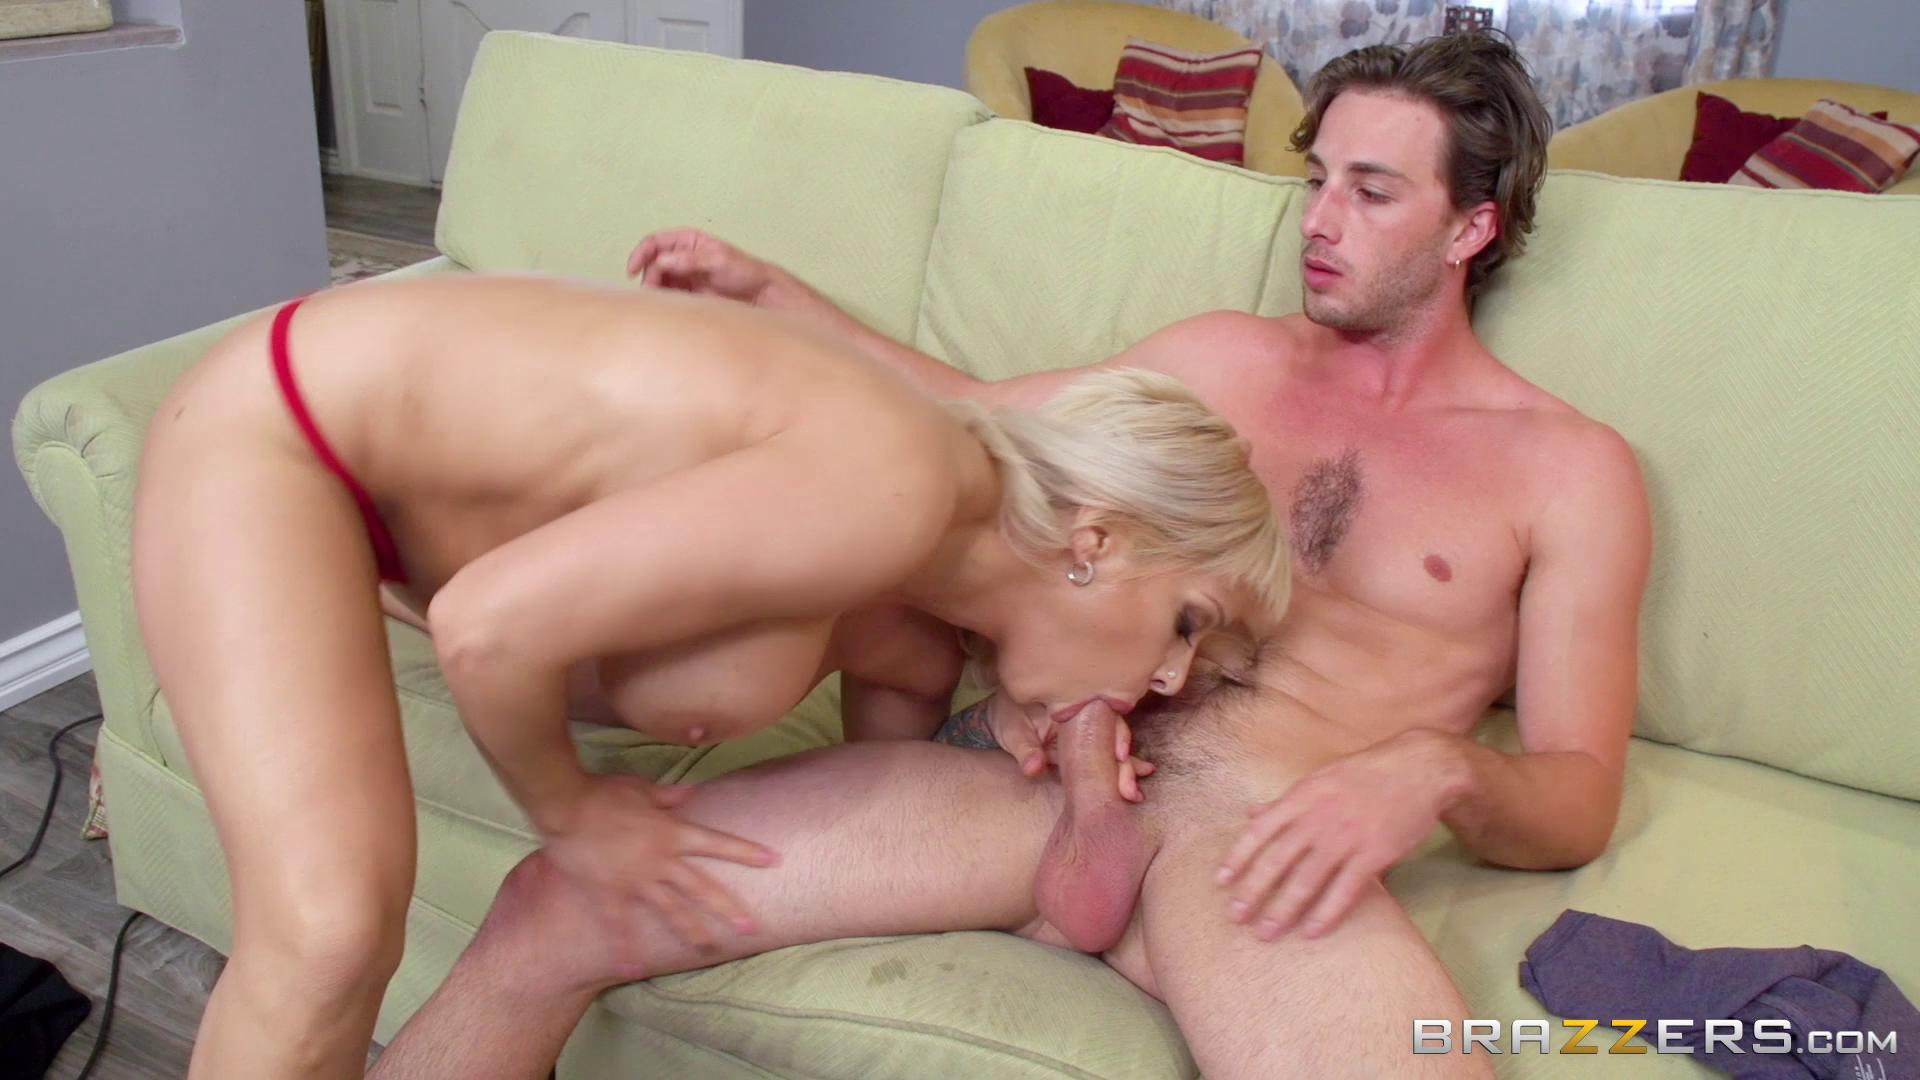 Everybody Loves Anal Disc1 - Free Sex Videos - Pornsextubetv-2087